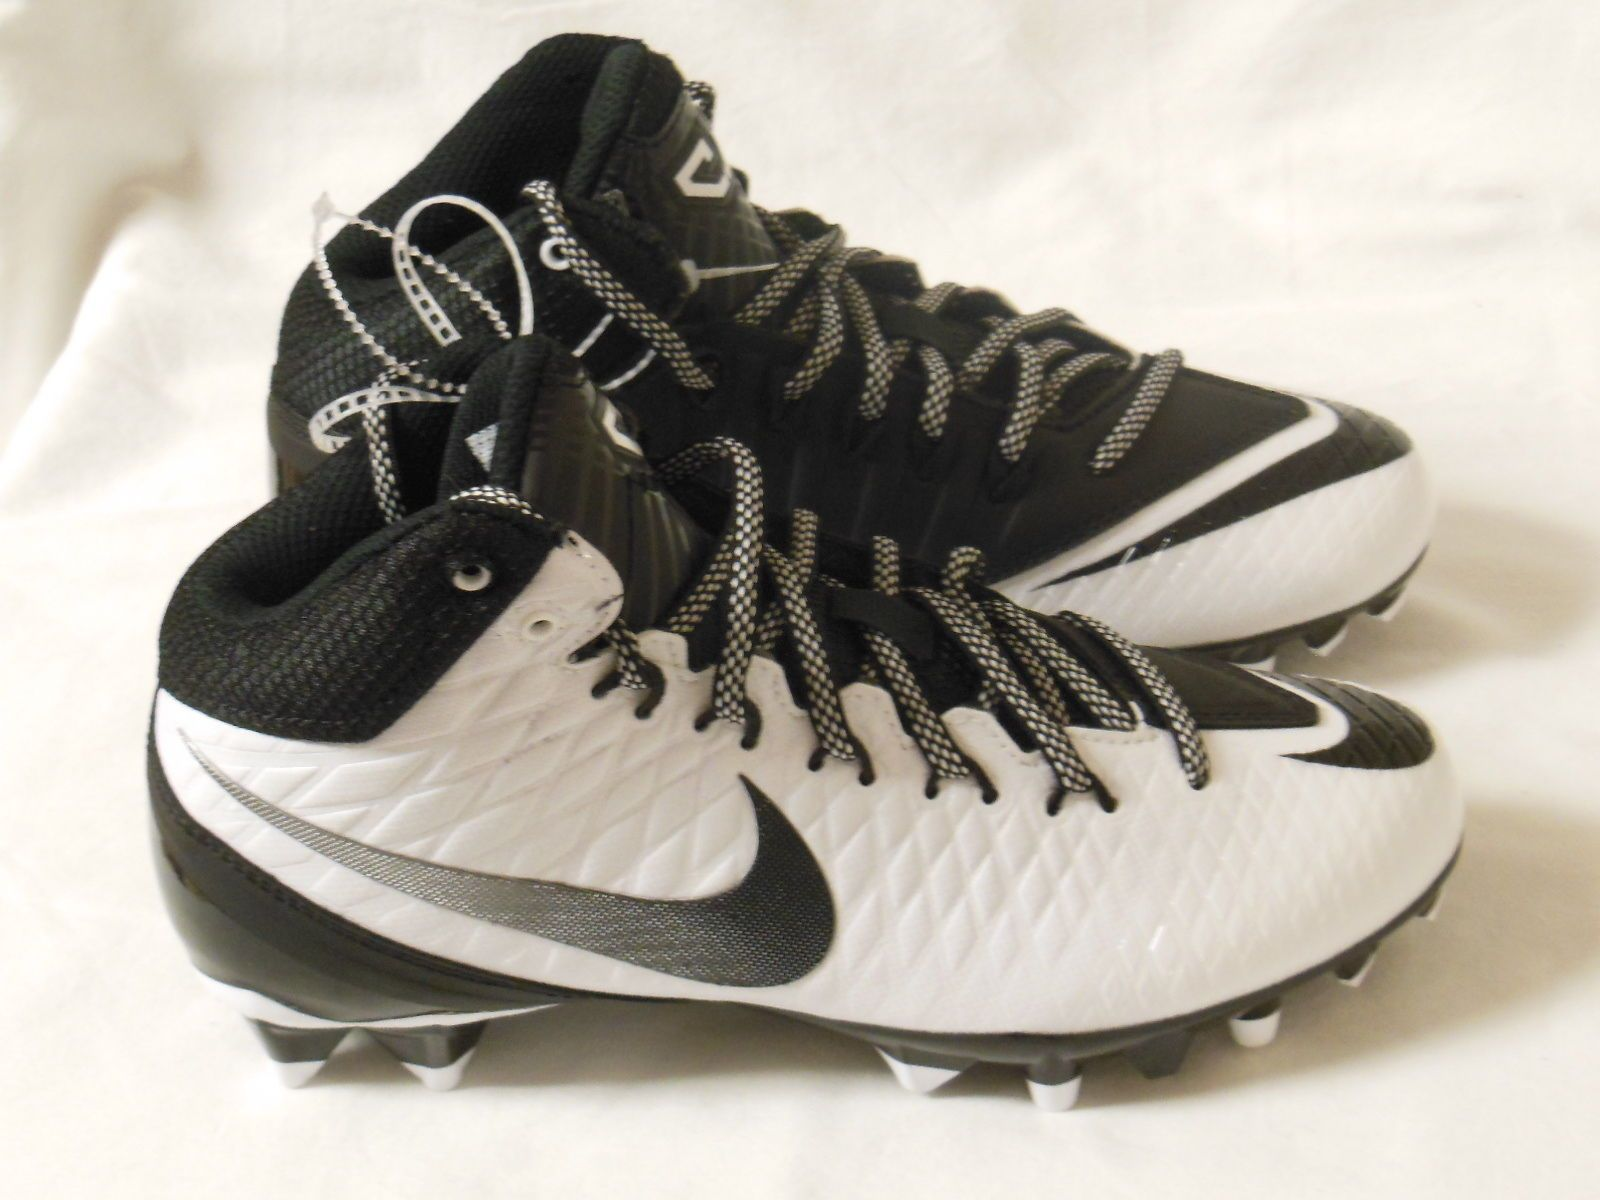 a5994d1ff Nike Calvin Johnson CJ3 Pro TD Youth Football Cleats White 723975-100 Size  4Y